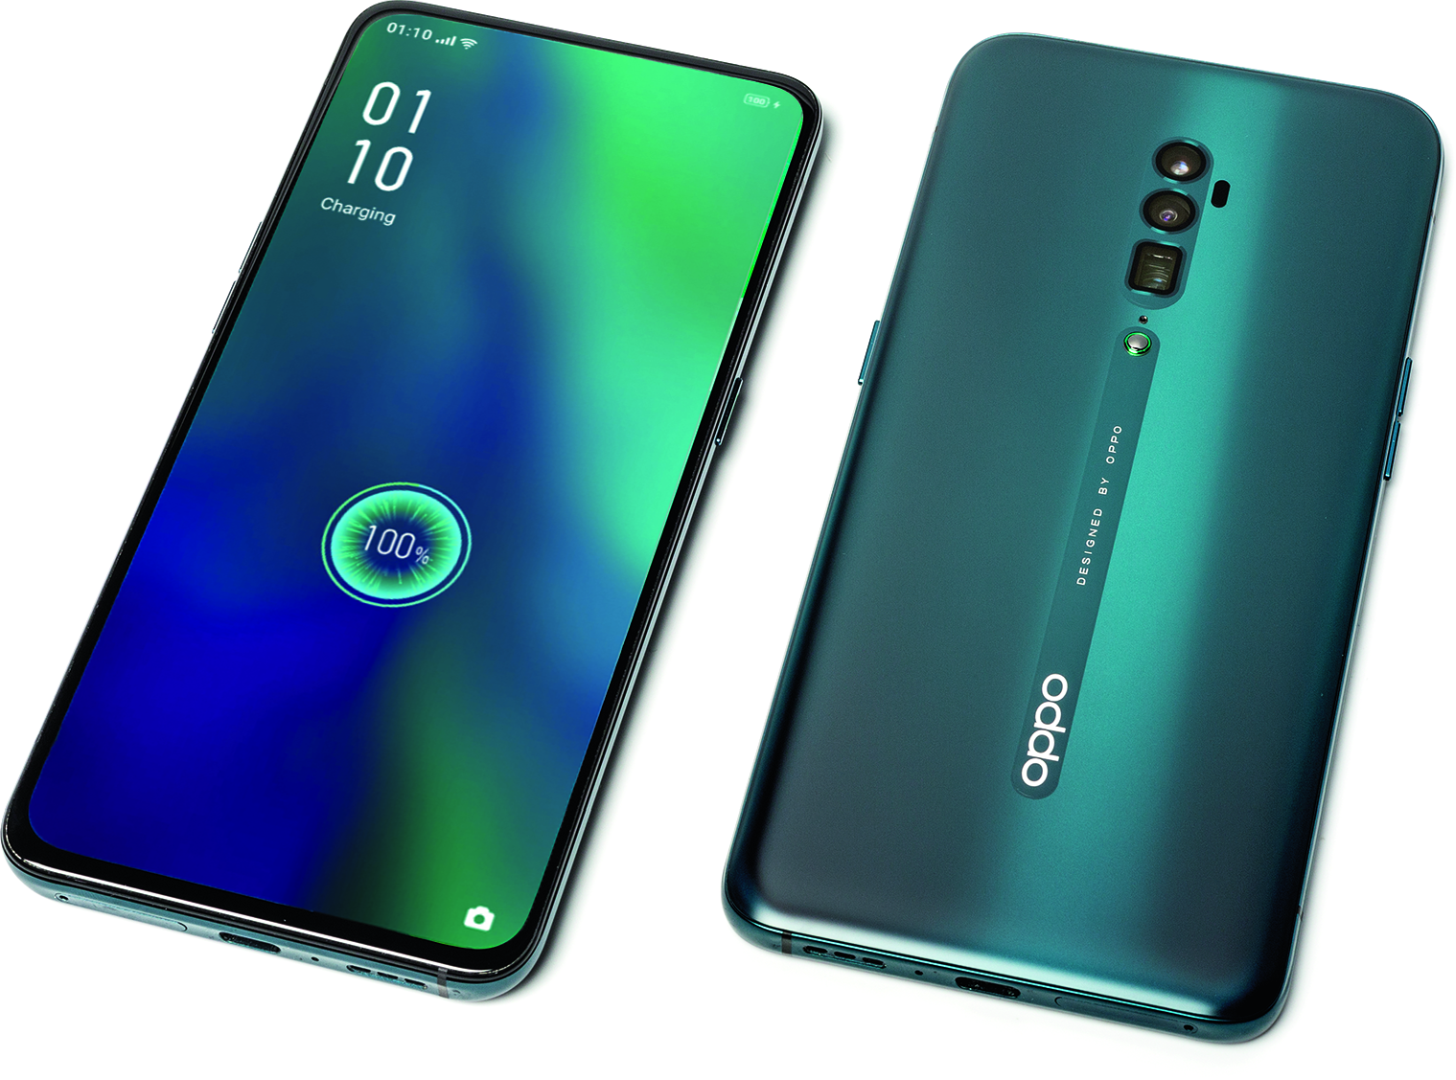 Oppo Reno smartphone zoom 10x review test